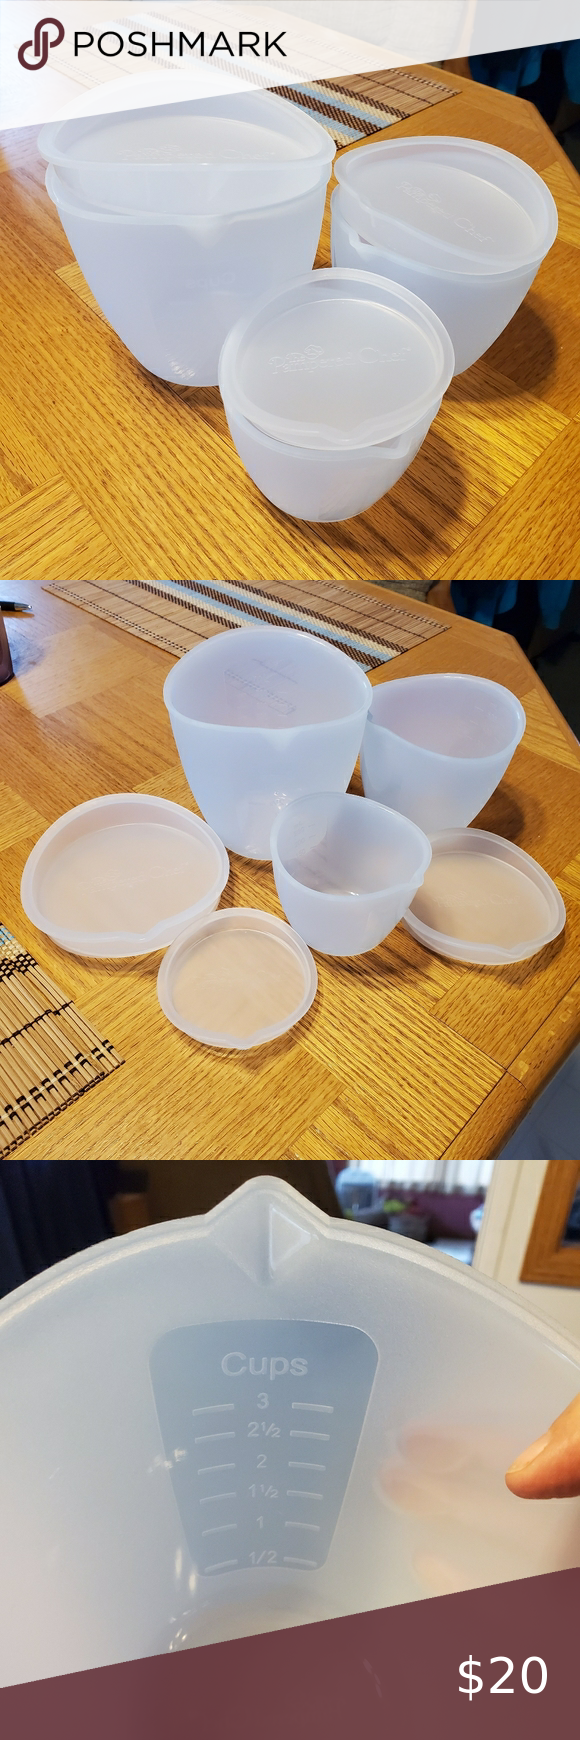 Pampered Chef Silicone Prep Bowls 3 Silicone Prep Bowls With Lids By Pampered Chef 1 Cup 250ml 2 Cup 500ml And 3 Cup 750ml Bowls Each Wi In 2020 With Images Pampered Chef